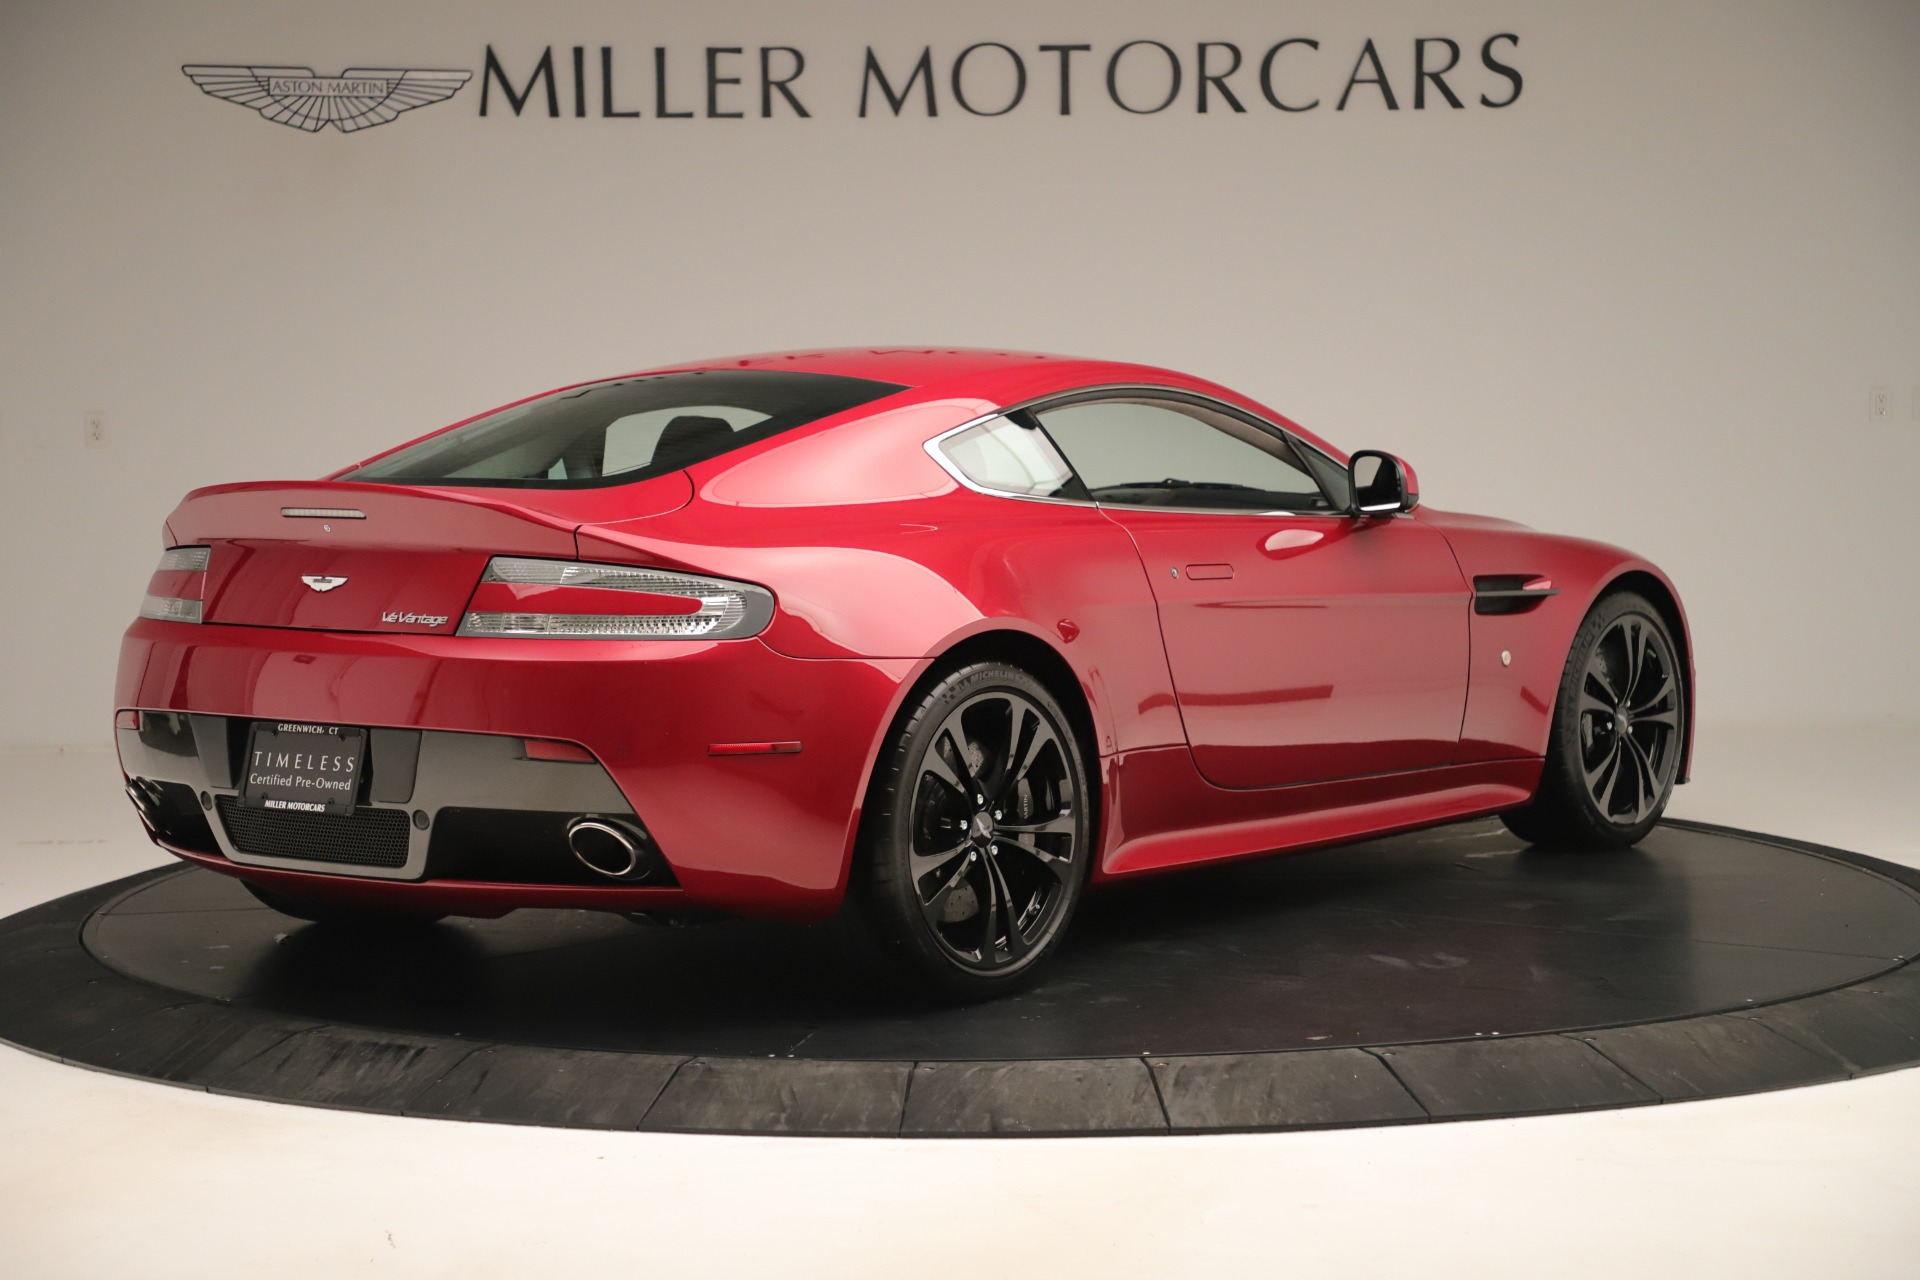 Used 2011 Aston Martin V12 Vantage Coupe For Sale In Westport, CT 3395_p10